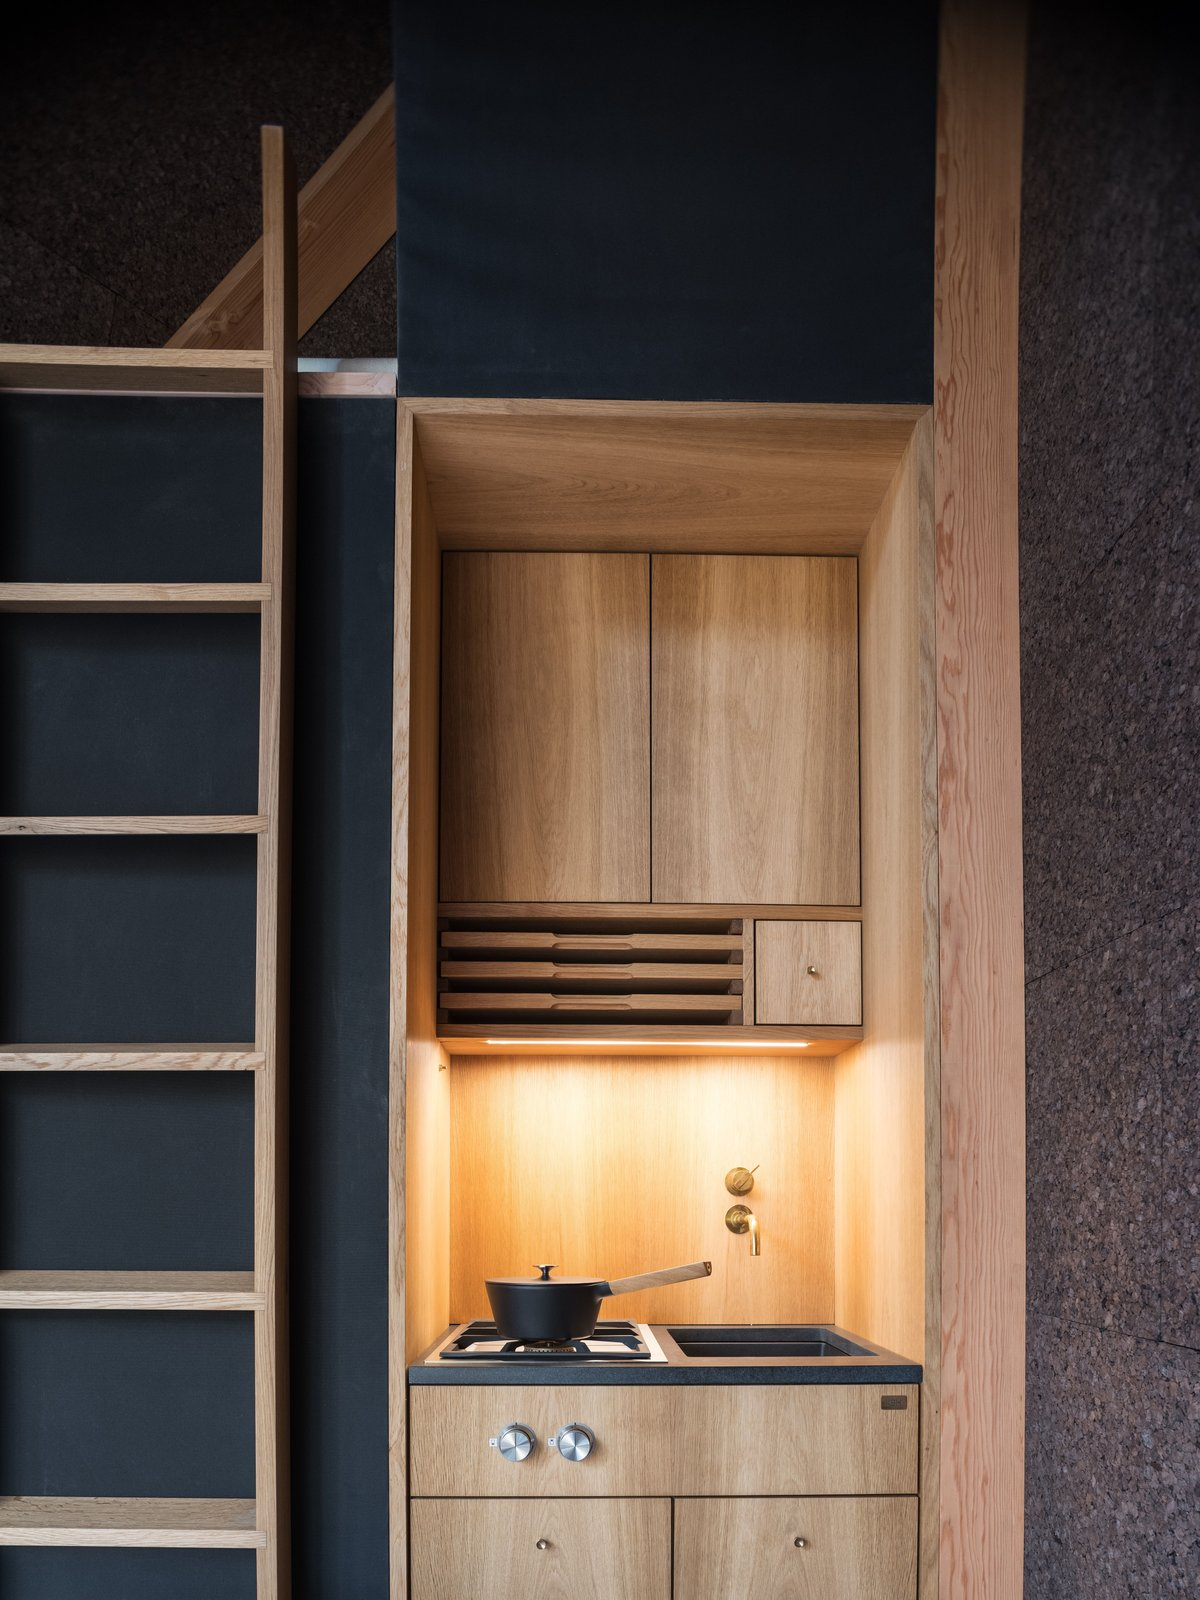 Kitchen, Wood Counter, Wood Backsplashe, Wood Cabinet, Cooktops, Undermount Sink, and Accent Lighting The A45 is outfitted with a petite kitchen designed by Københavns Møbelsnedkeri.     Photos from This Sleek, Angular Tiny Home Is Not Your Average A-Frame Cabin